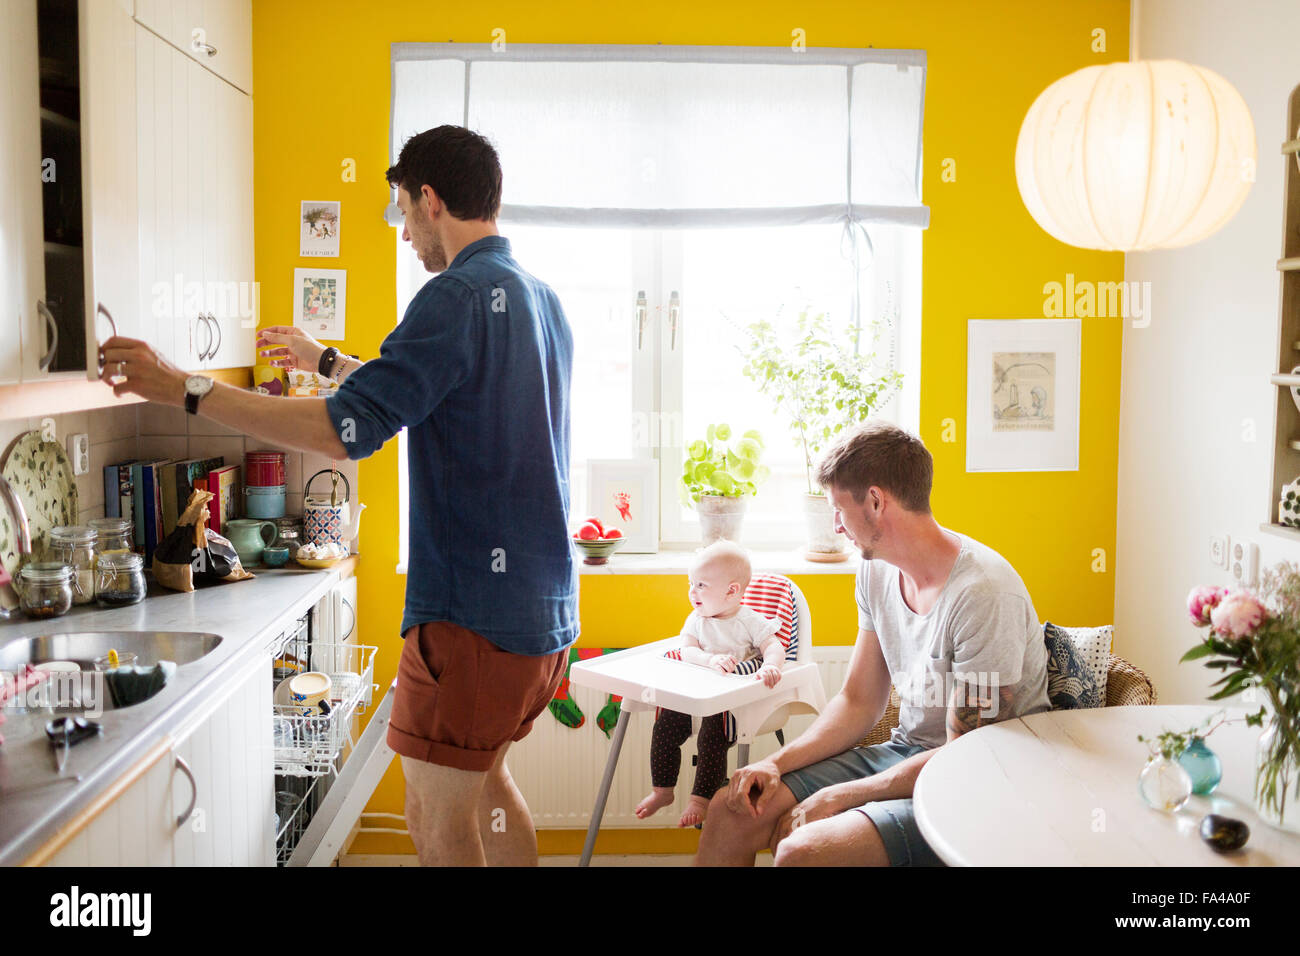 Gay couple with baby girl sitting on high chair in kitchen Stock Photo